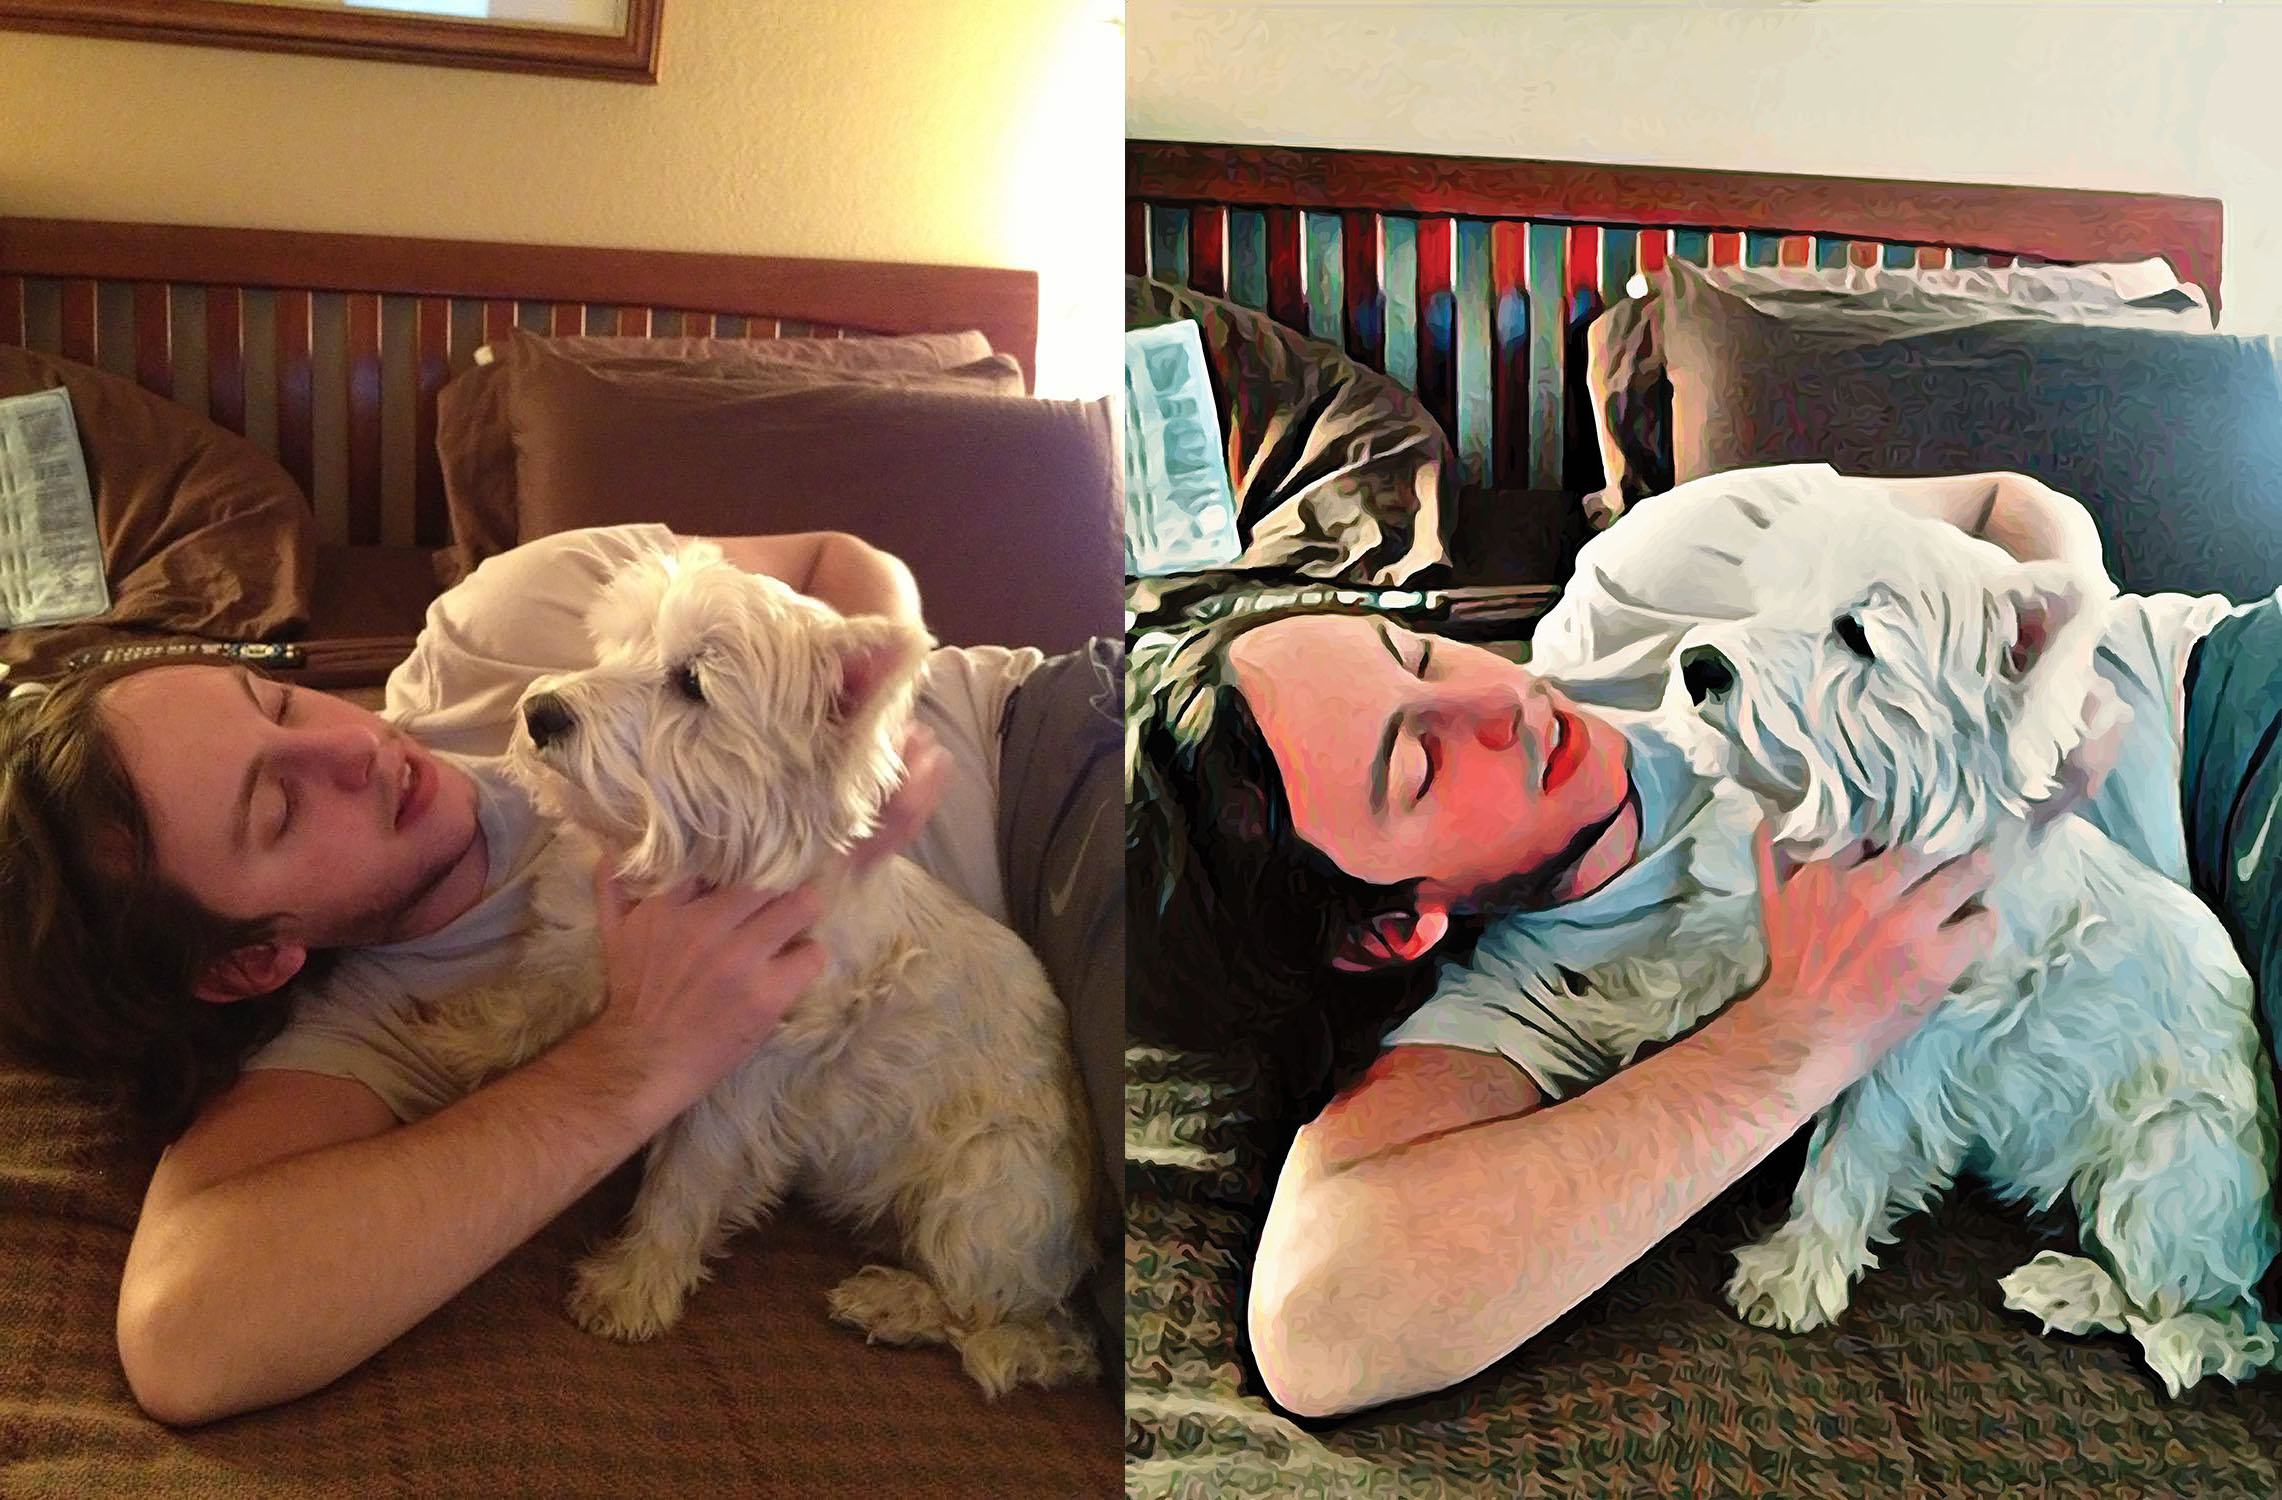 Before and after stylized image of a man lying on top of a bed petting a dog